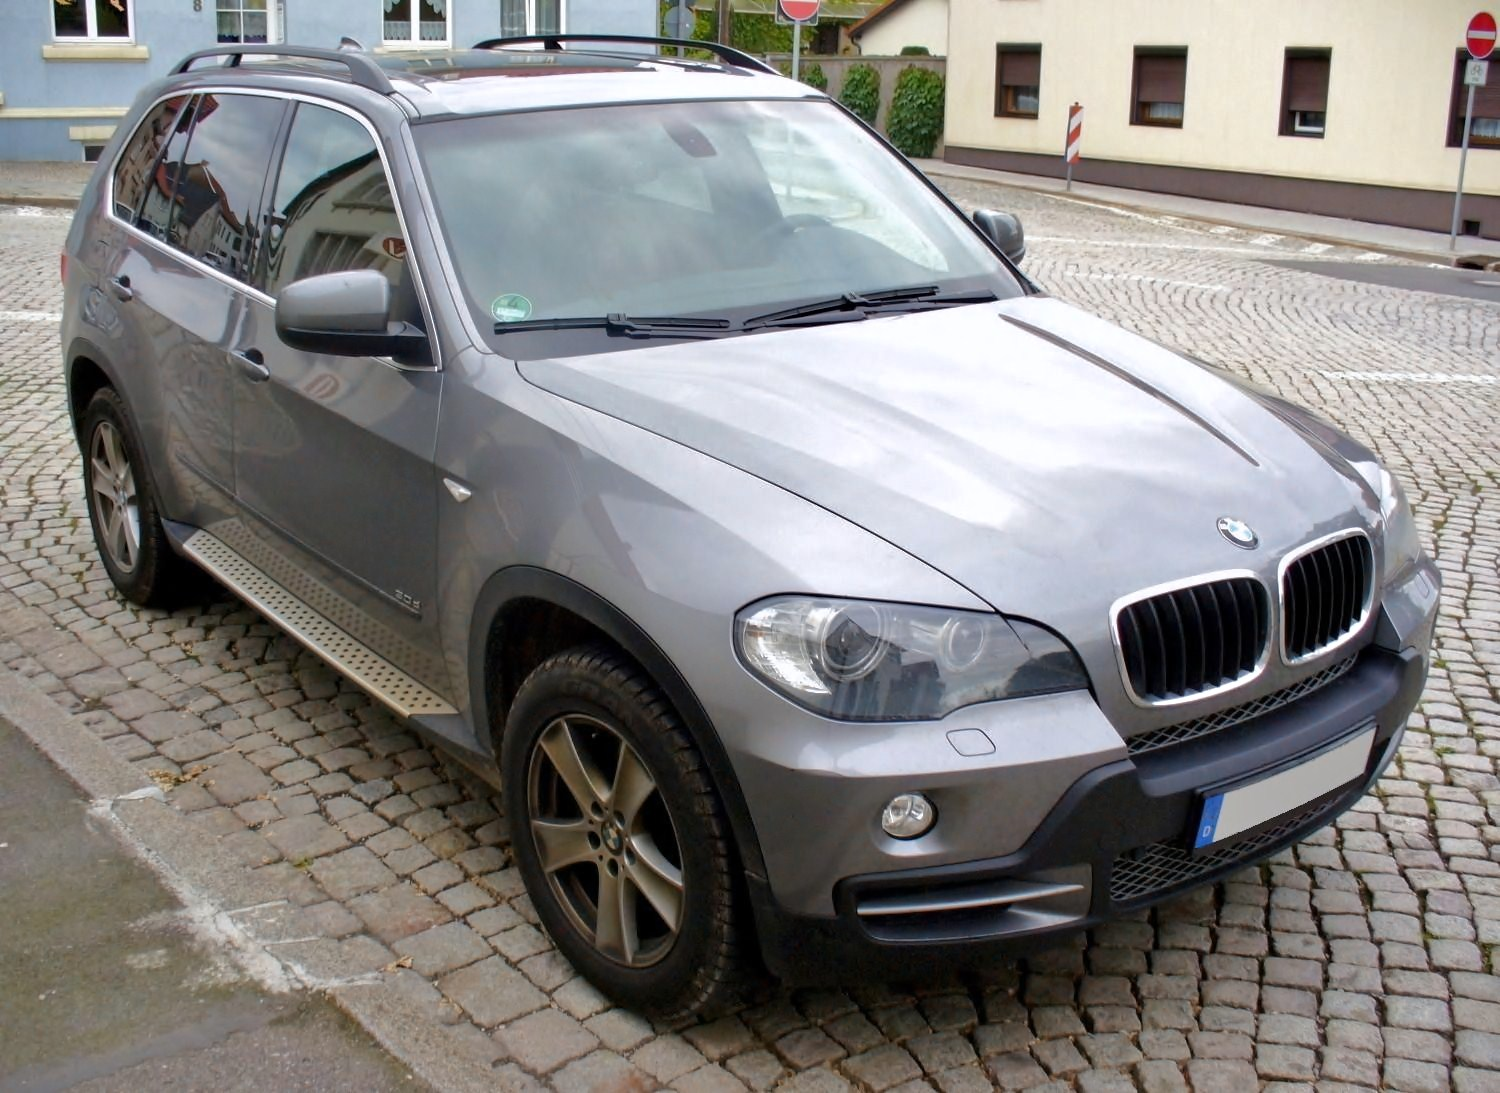 file bmw e70 x5 spacegrau jpg wikimedia commons. Black Bedroom Furniture Sets. Home Design Ideas